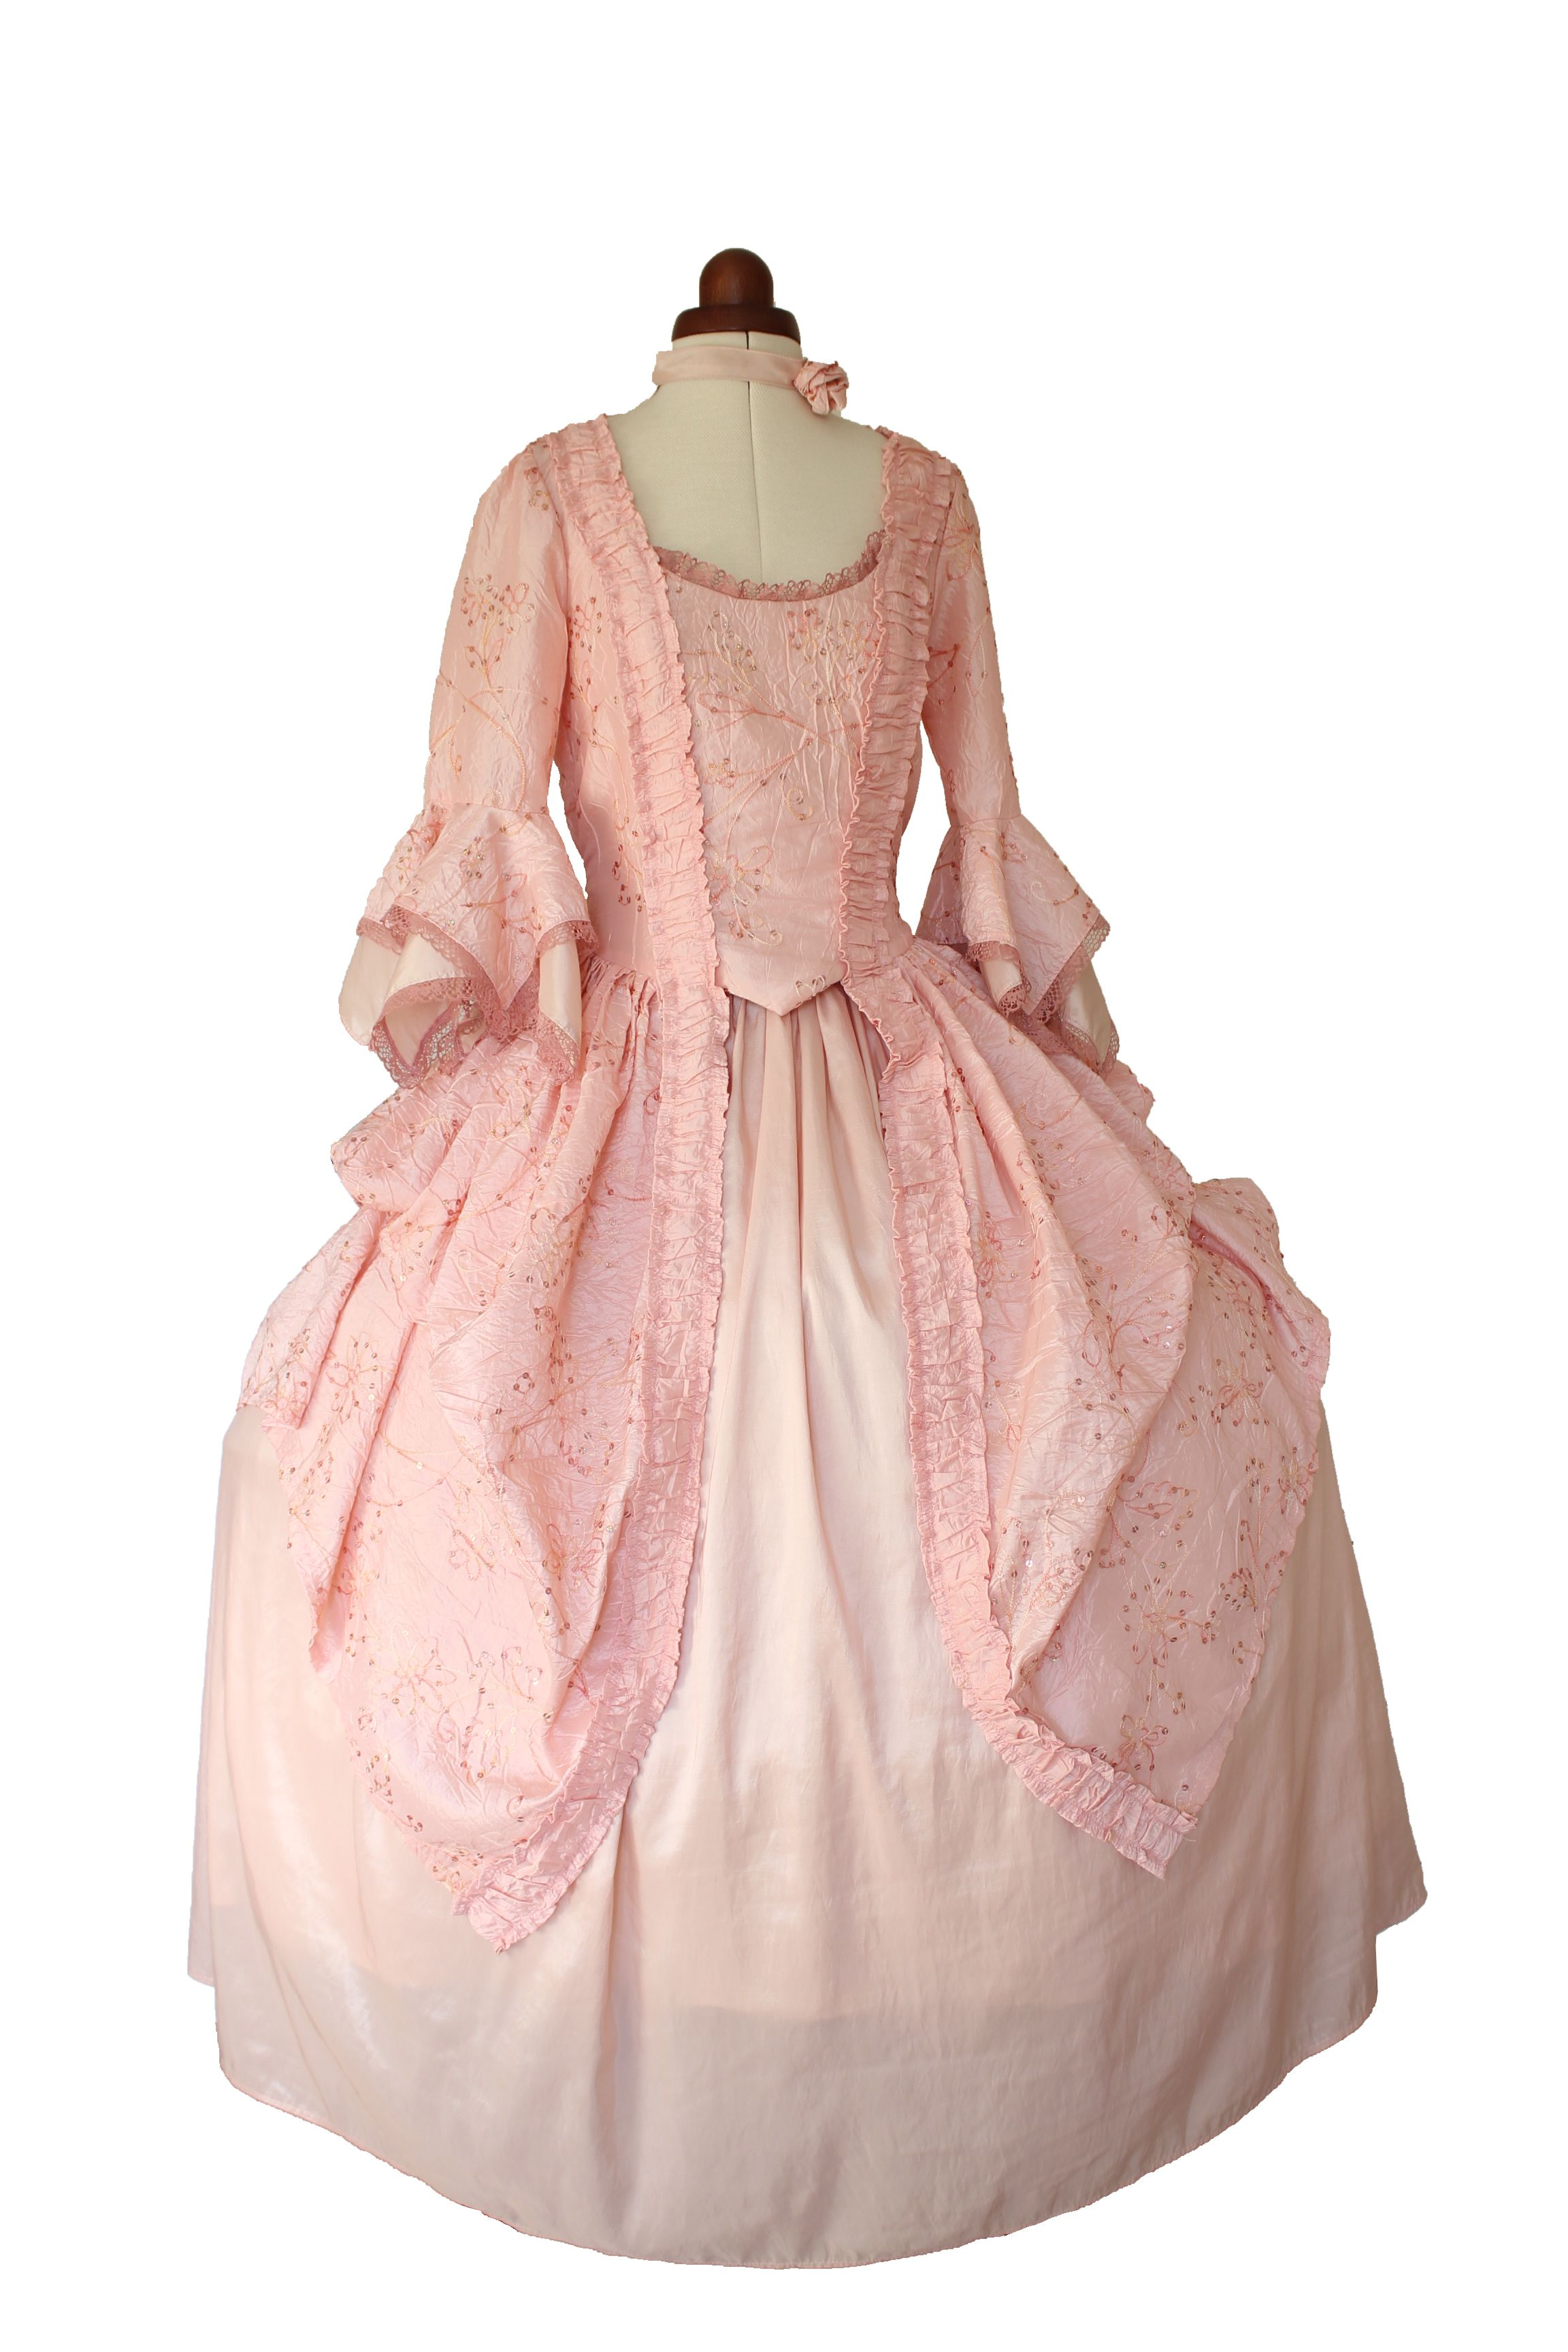 Perfect For A Venetian Masked Ball Or For Doing The Gardening D Complete Costume Costume Hire Victorian Dress